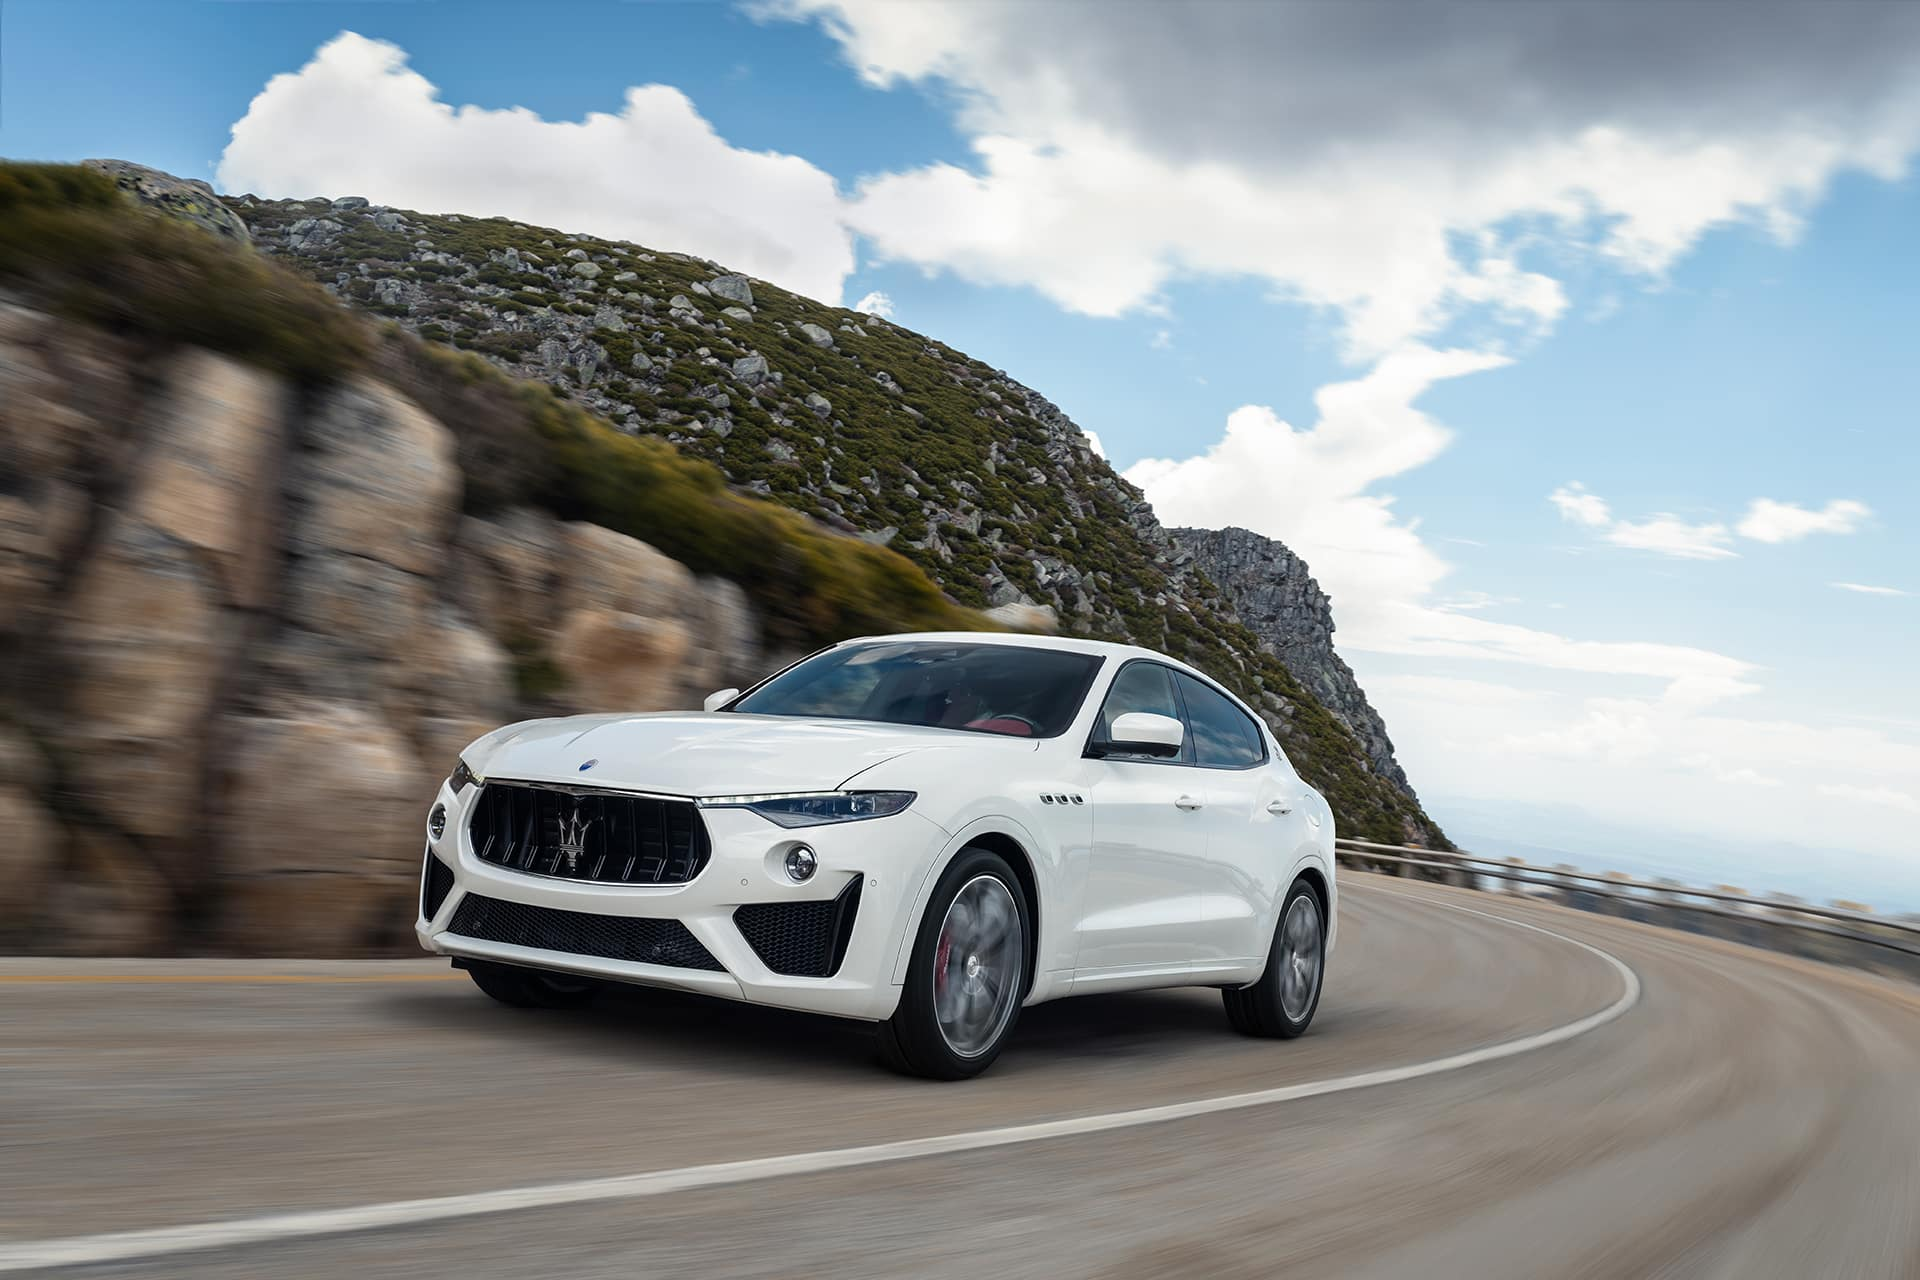 2020 Maserati Levante driving on mountain road | Bennett Maserati of Allentown is a Car Dealership near East Stroudsburg PA in Allentown